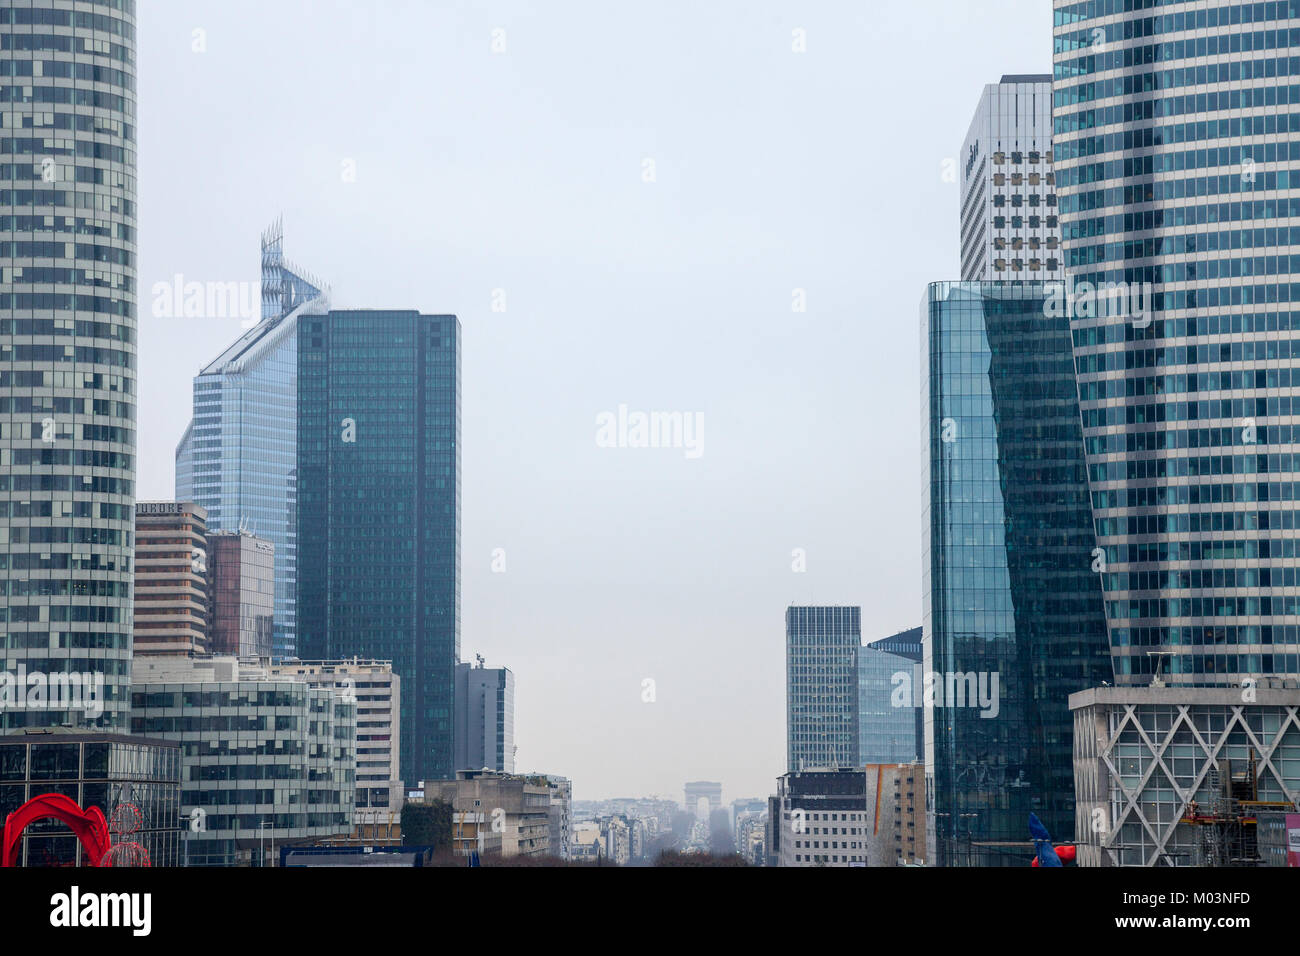 PARIS, FRANCE - DECEMBER 20, 2017: La Defense district skyline with Champs Elysees and Arc de Triomphe in the background. - Stock Image